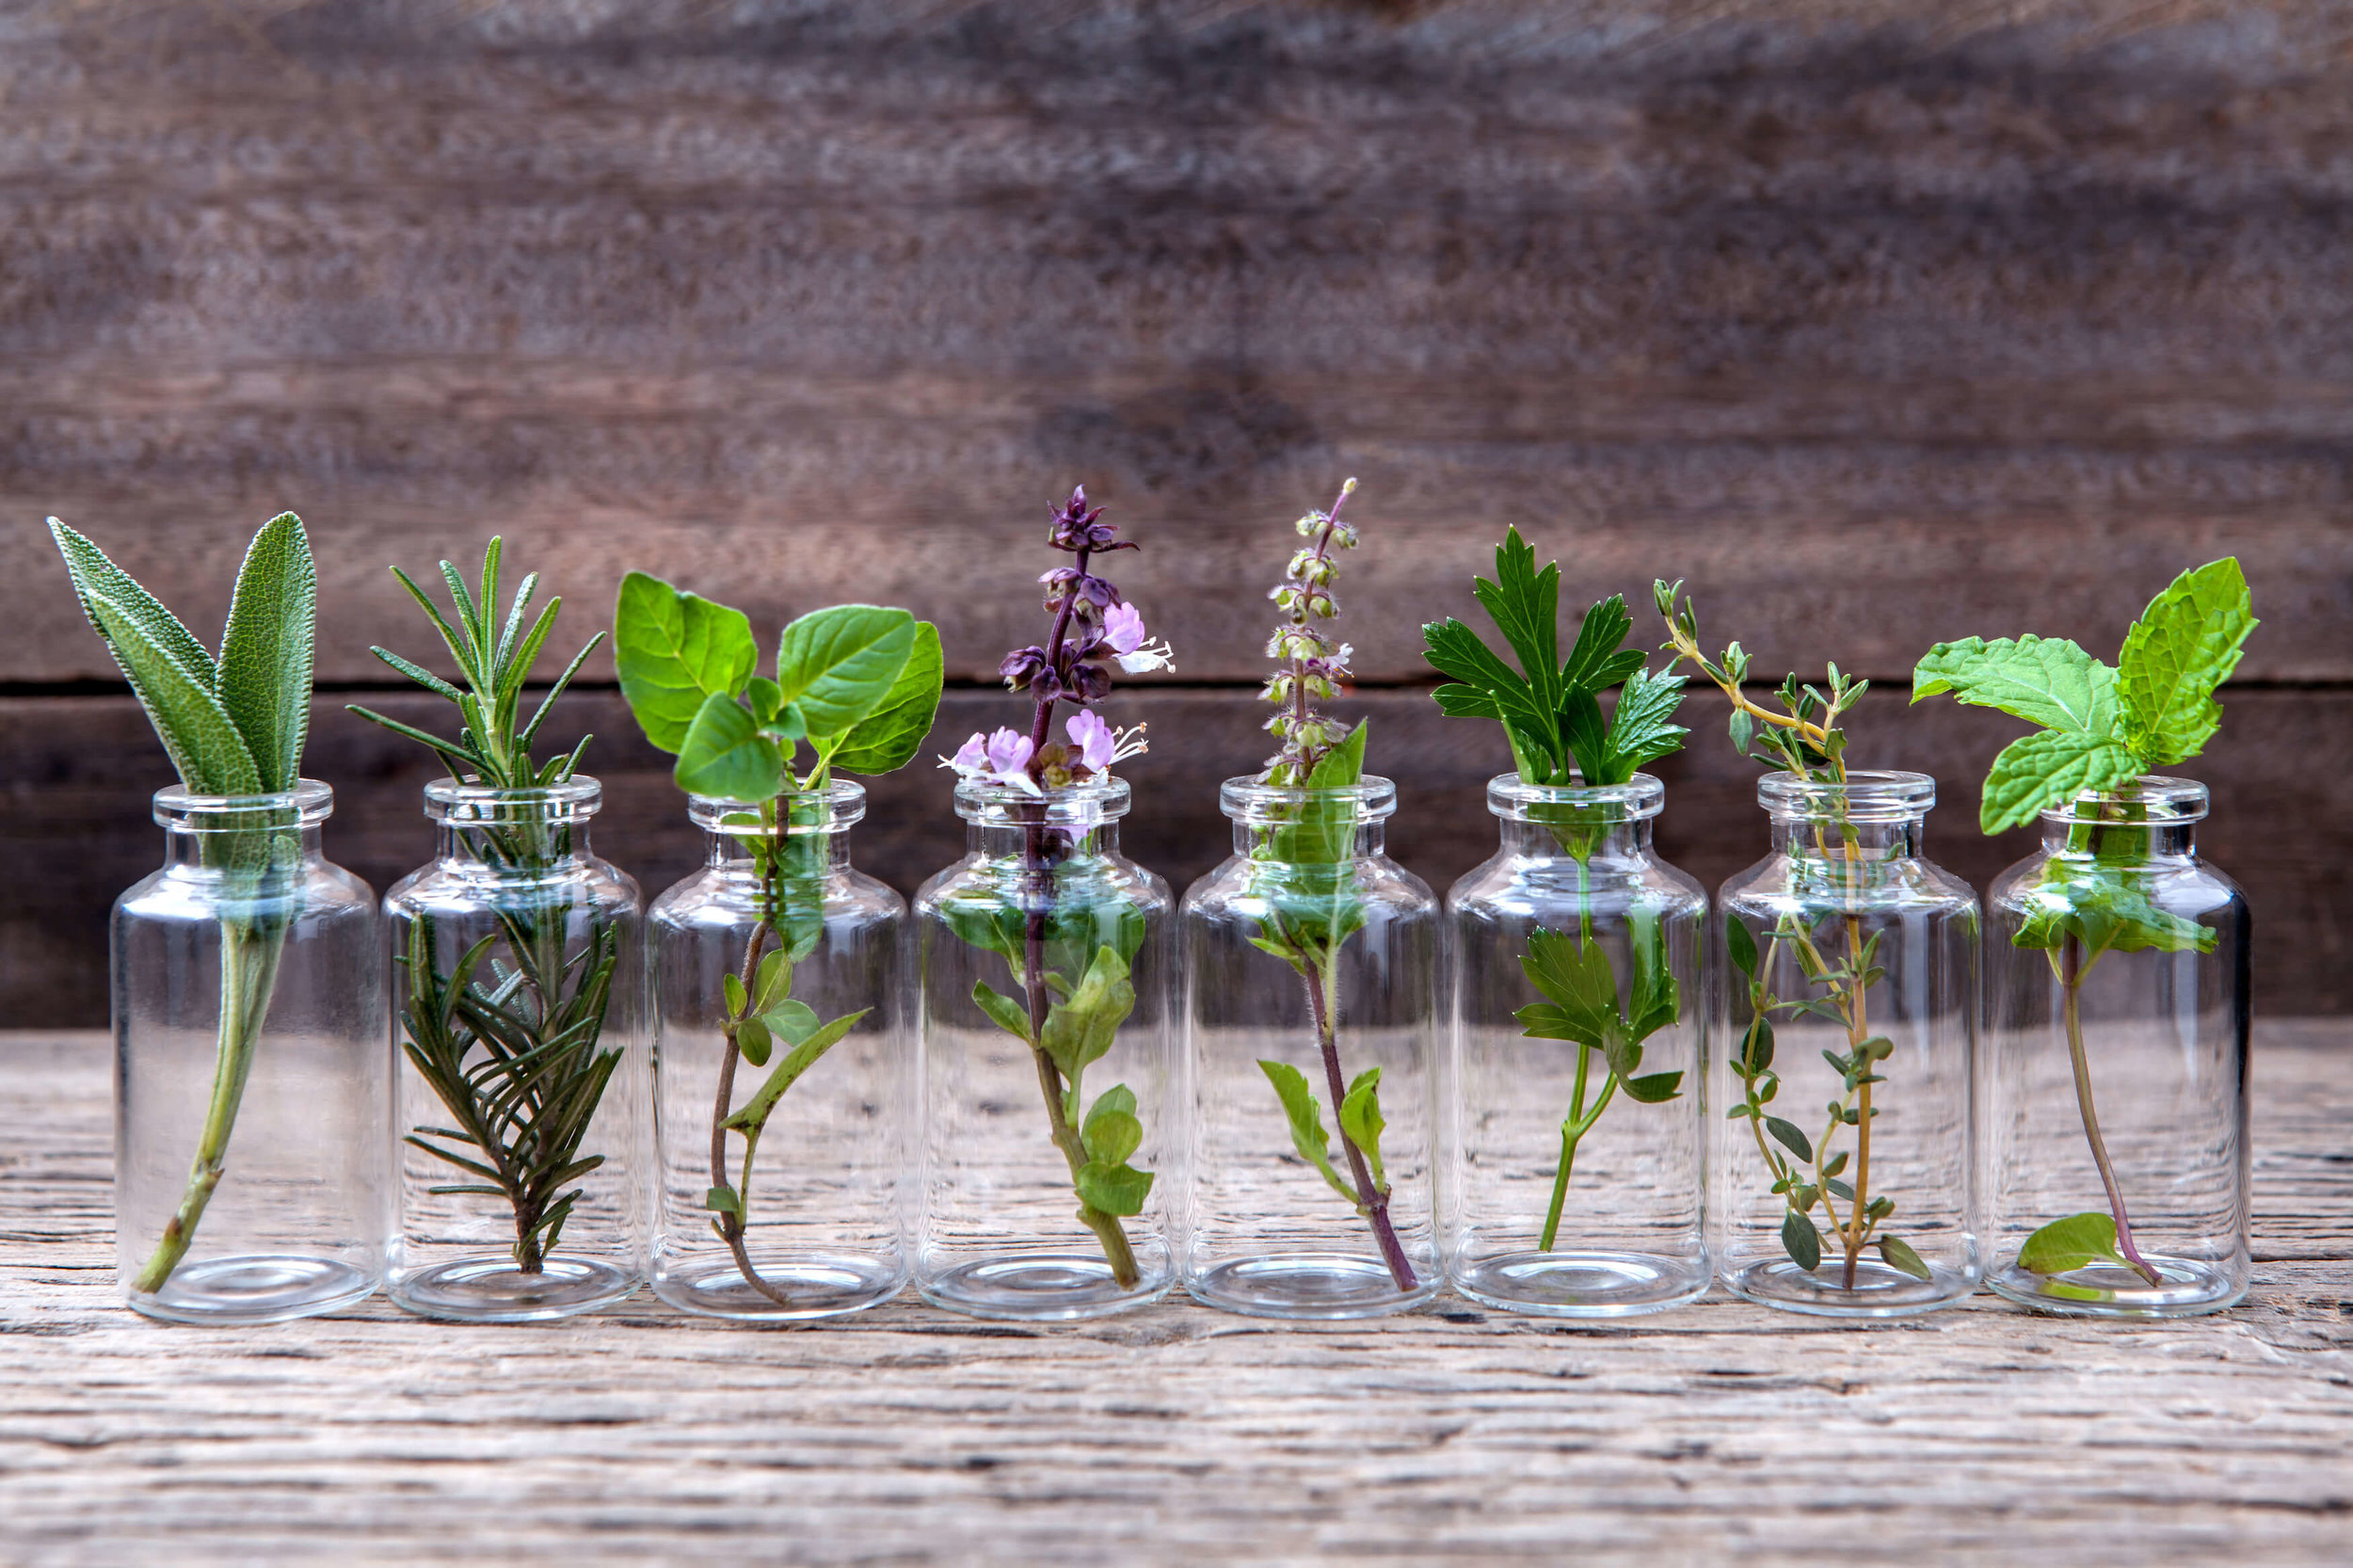 Flower Essence - Flower essence remedies are liquid infusions made from flowers in the tradition of Dr. Edward Bach, who pioneered flower remedies in the 1930s. Flower essences help support emotional balance and well-being.